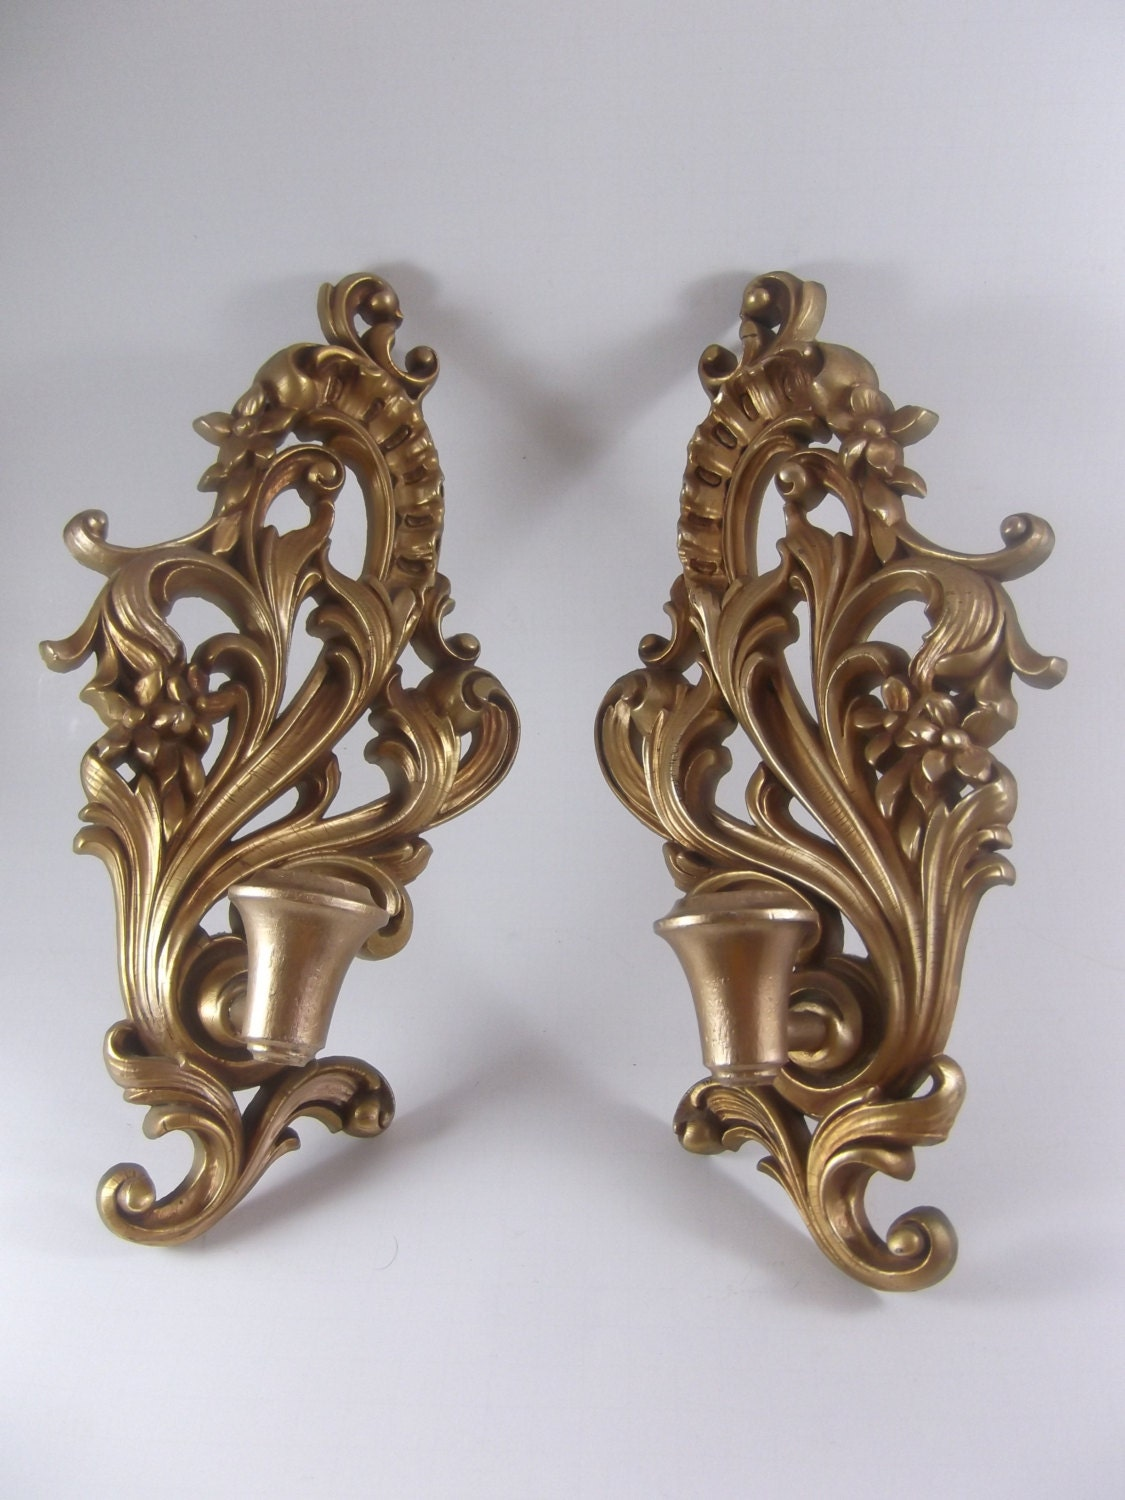 Wall Candle Sconces Wood : Wood Candle Sconce Pair Vintage Wall Mount Gilt by acornabbey